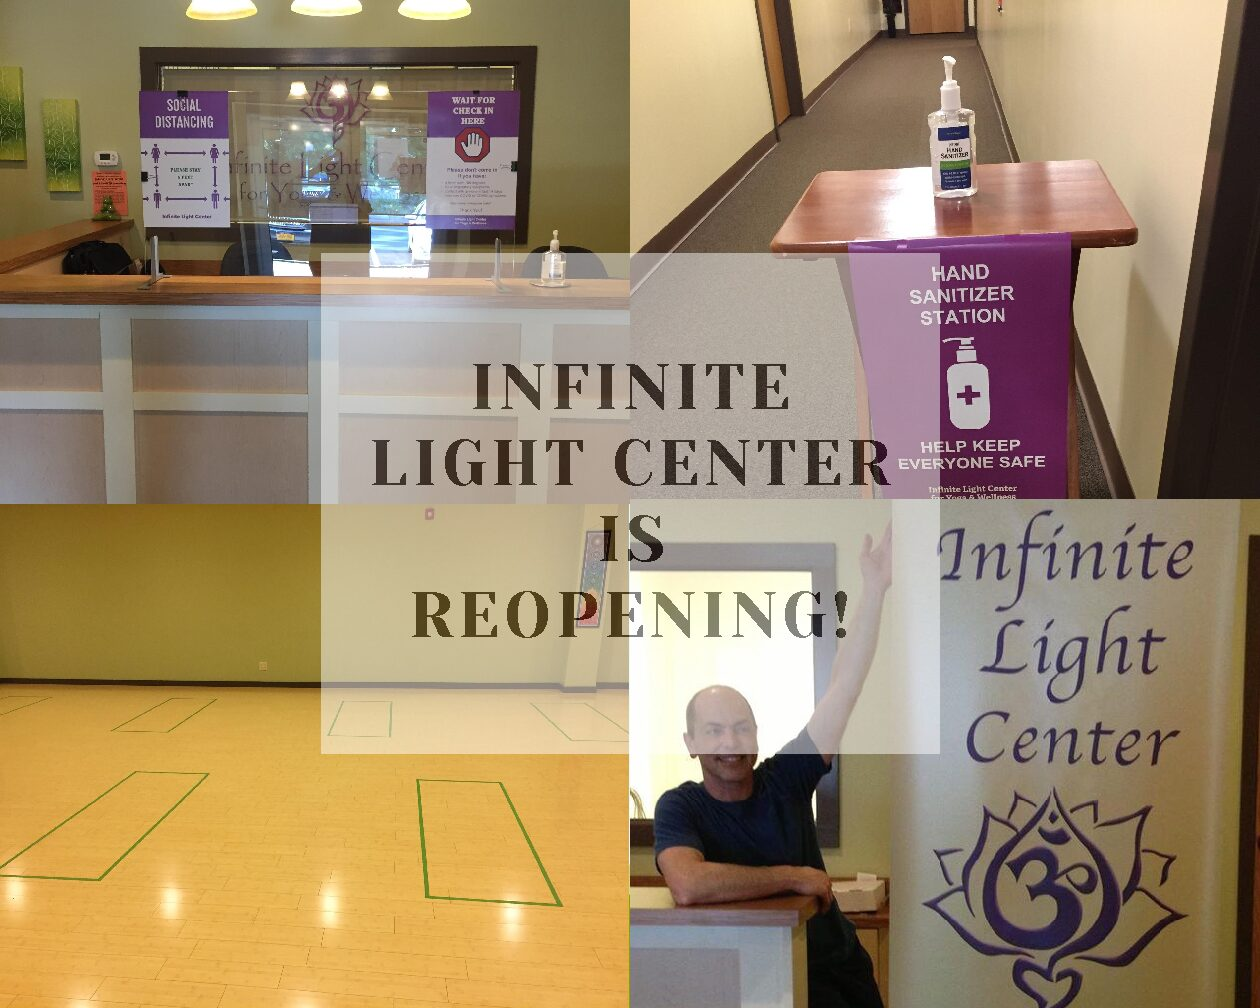 Behind the Scenes as Infinite Light Center Prepares to Reopen